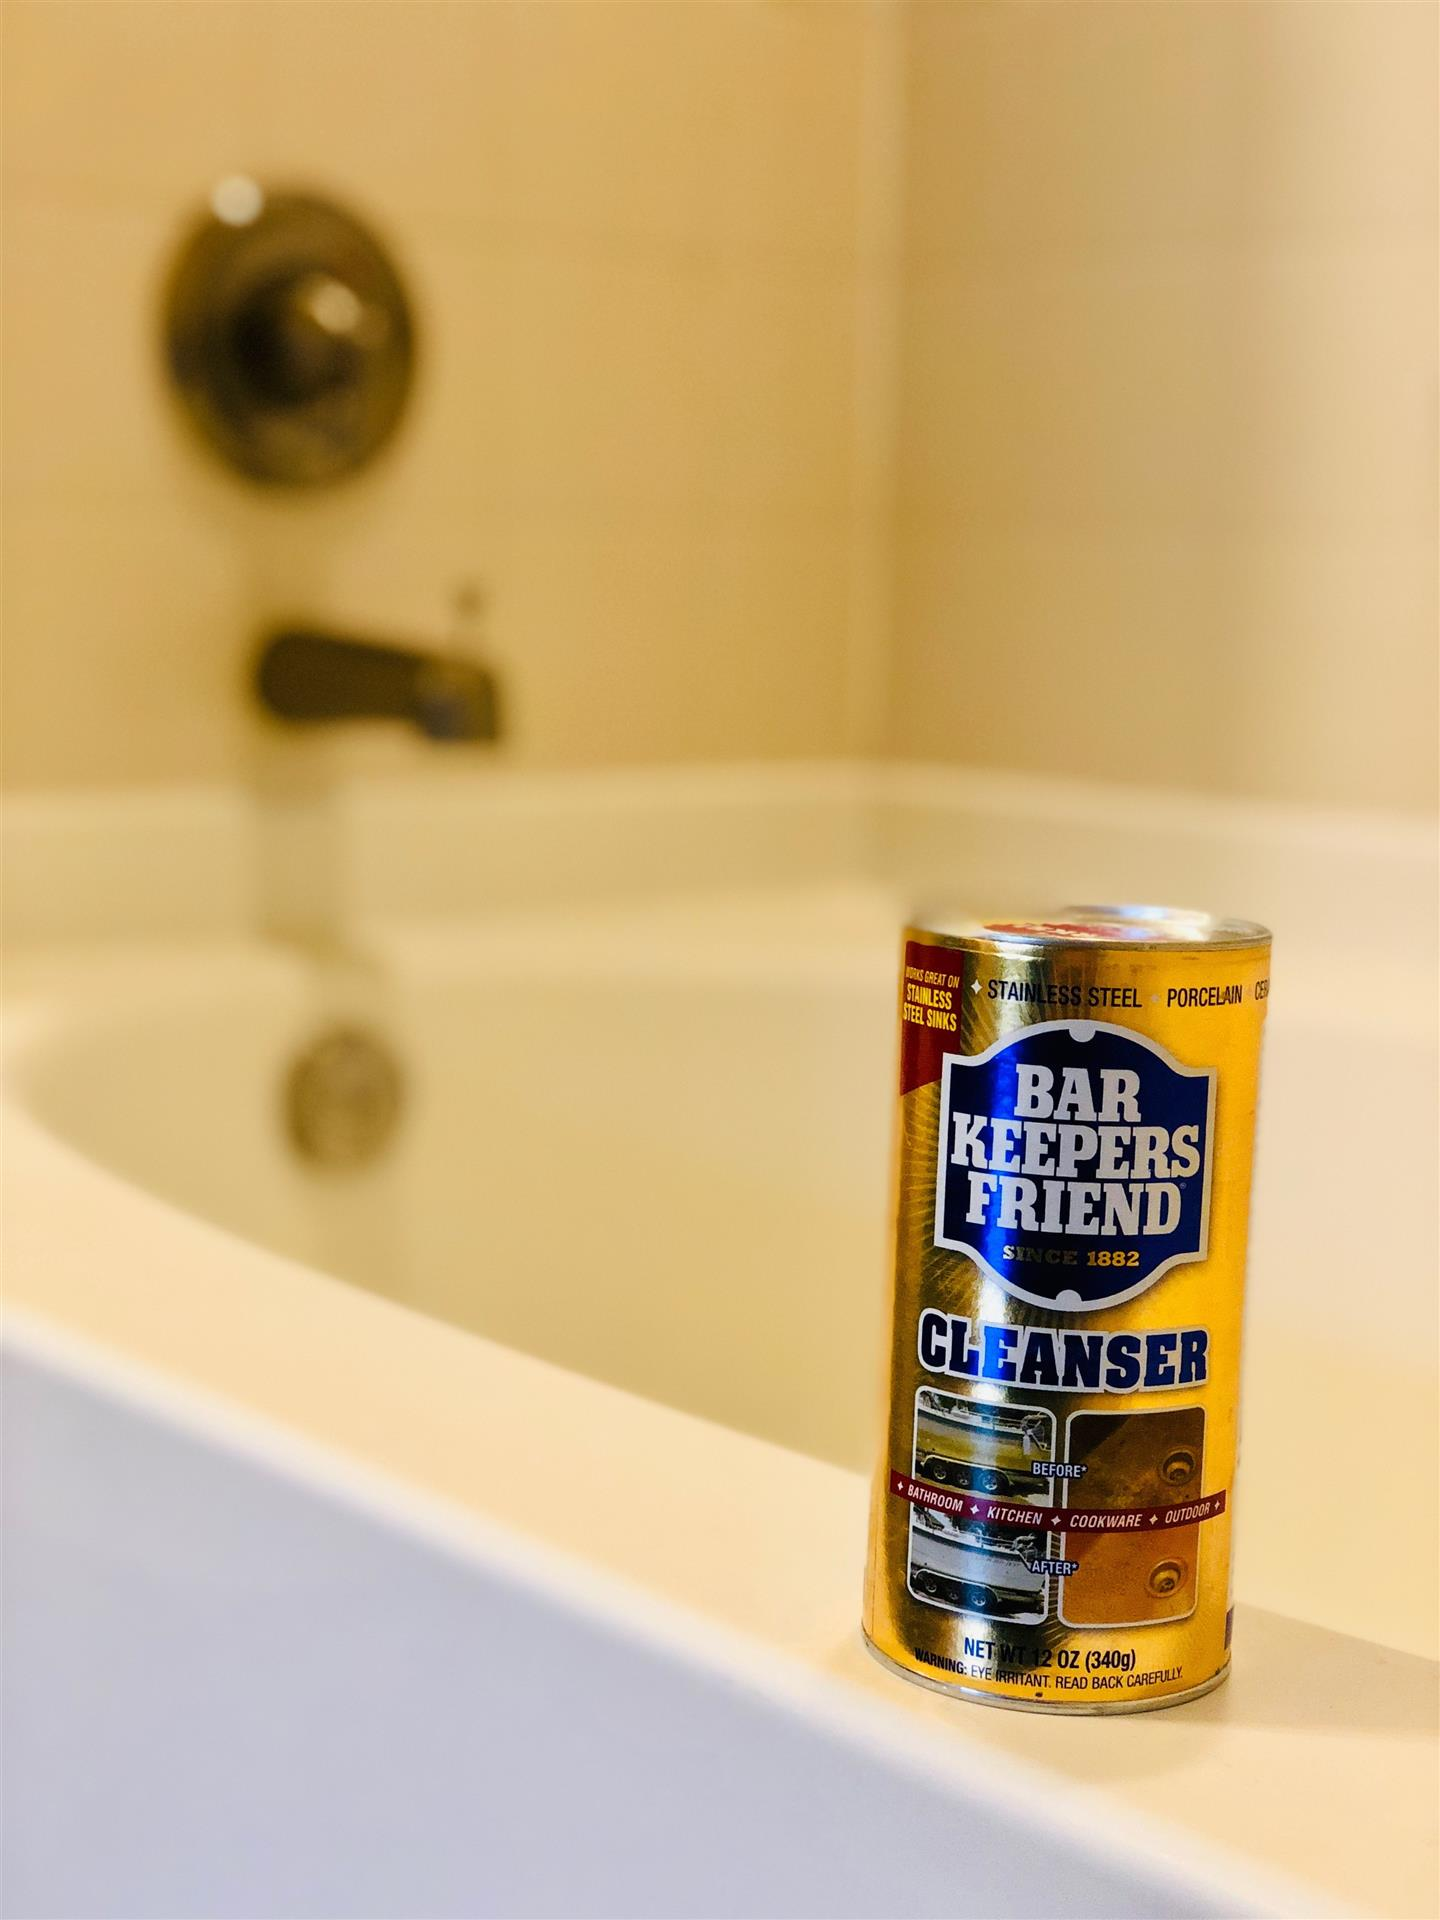 Bar Keepers Friend on side of tub